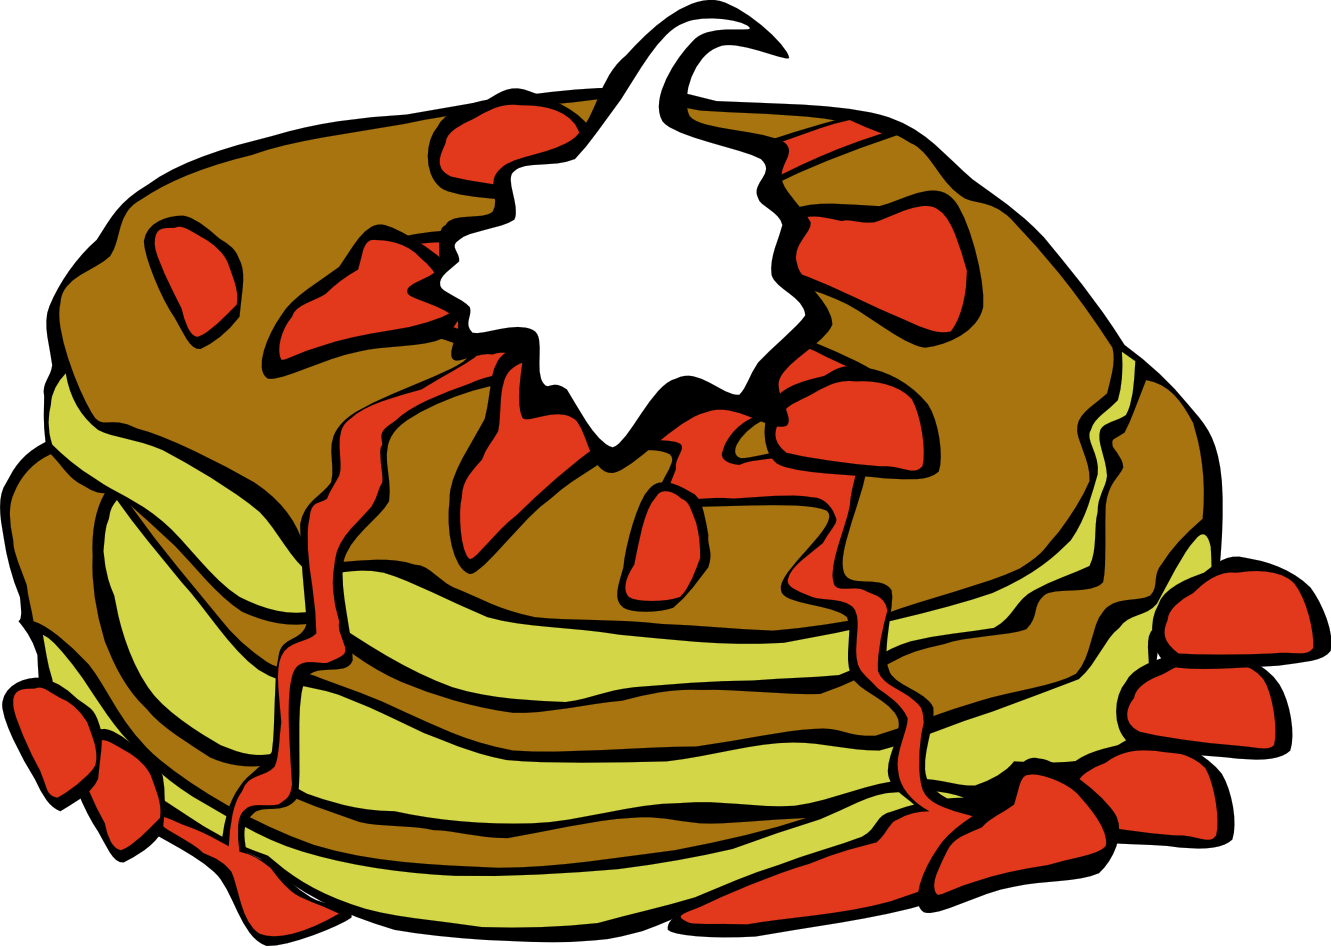 1331x946 Breakfast Clipart 0 Crepes For Breakfast Clip Art Free Image